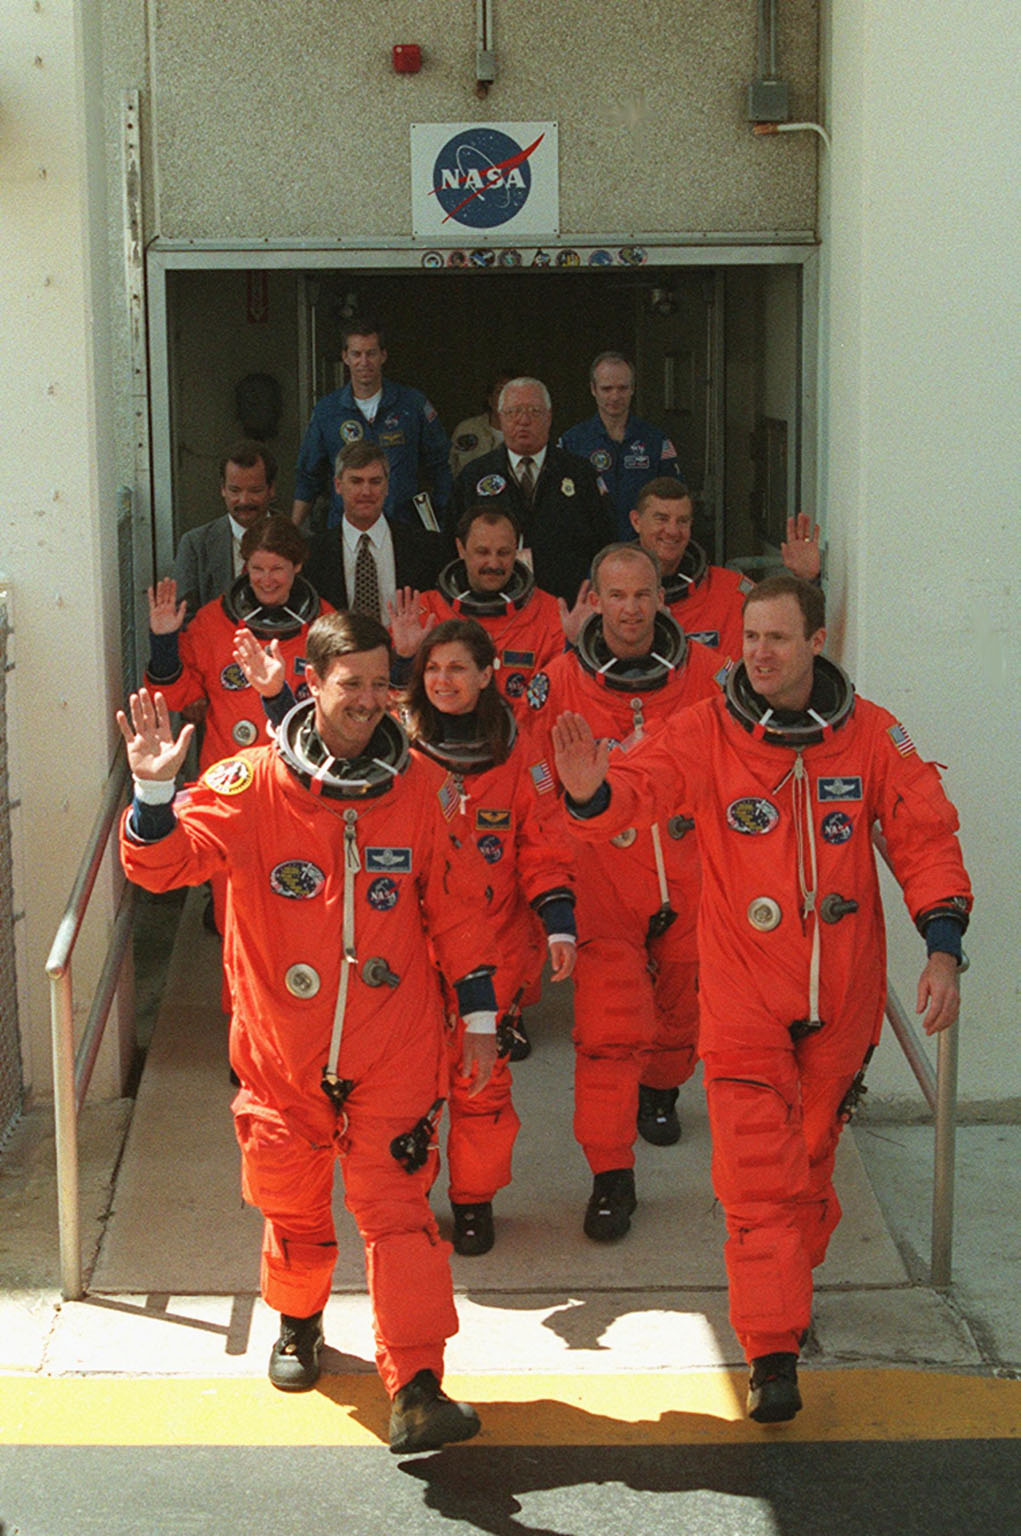 The STS-101 crew wave to onlookers as they leave the Operations and Checkout Building enroute a third time to Launch Pad 39A for launch of Space Shuttle Atlantis. The previous two launch attempts were scrubbed due to high cross winds at the Shuttle Landing Facility. They are (front) Pilot Scott J. Horowitz (left) and Commander James D. Halsell Jr.; (middle) Mission Specialists Mary Ellen Weber and Jeffrey N. Williams; (back) Mission Specialists Susan J. Helms, Yury Usachev of Russia and James S. Voss. The mission will take the crew to the International Space Station to deliver logistics and supplies and to prepare the Station for the arrival of the Zvezda Service Module, expected to be launched by Russia in July 2000. Also, the crew will conduct one space walk. This is the third assembly flight to the Space Station. After the 10-day mission, Atlantis is expected to land at KSC May 6 at about 12:03 p.m. EDT